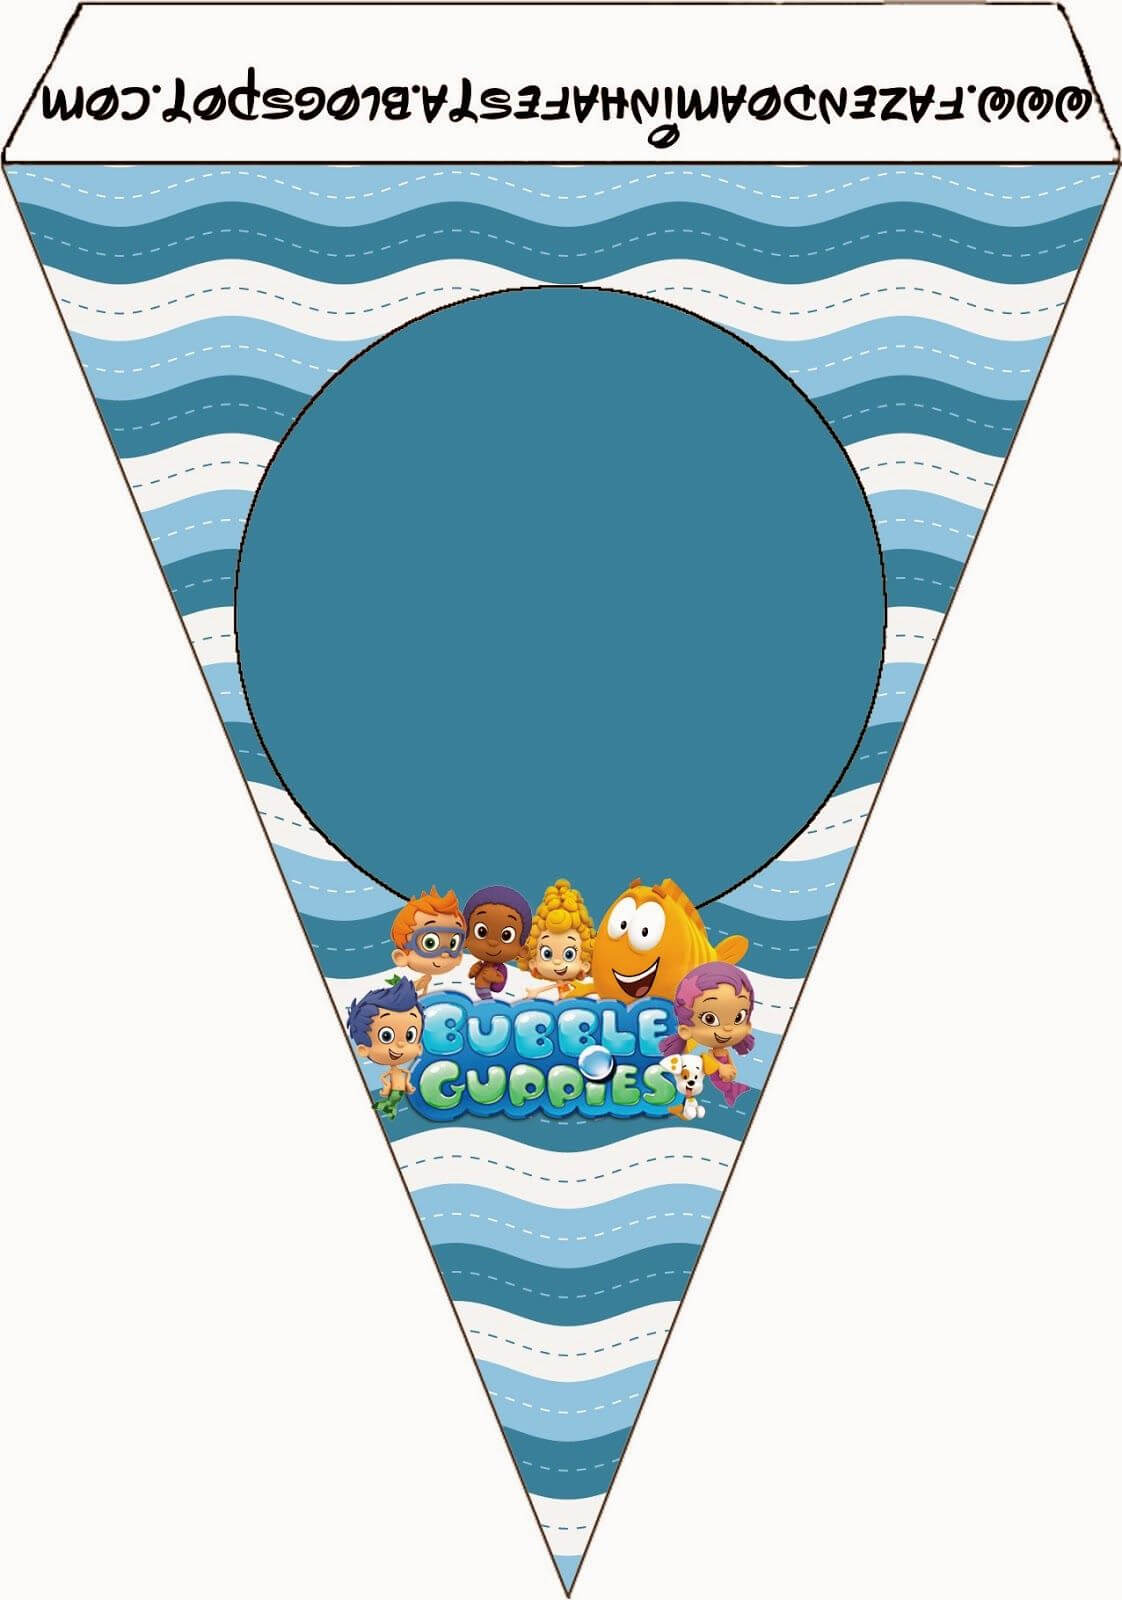 Bubble Guppies Free Party Printables. | Happy Birthday To Pertaining To Bubble Guppies Birthday Banner Template